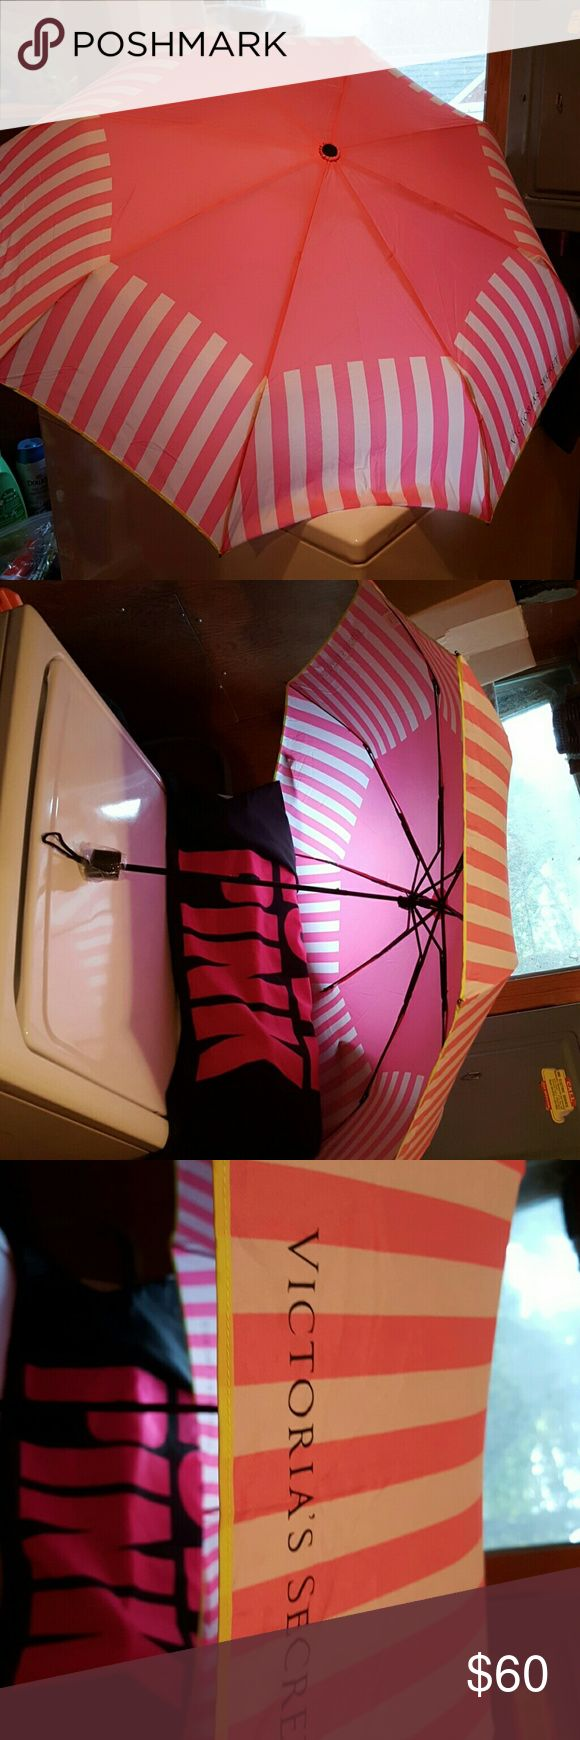 BRAND NEW VICTORIA SECRET UMBRELLA/W CASE/BOX I BOUGHT THIS LAST YEAR?  BEEN STORED!  NEVER TOOK OUT OF UMBRELLA SLEEVE/CASE UNTIL NOW! ONLY FOR PICS! PERFECT NEW CONDITION WILL COME TO YOU IN VS/UMBRELLA SLEEVE/CASE & BOX! POSH TAKES 20%!  I'M MAY PRICE TOO HIGH I AM ?????ALWAYS WILLING TO NEGOTIATE!???? PLEASE USE OFFER BUTTON &SCALE IV GOT WAY!?? TOO MUCH! VS/PINK #1000+  PIECES IF NOT MORE!  ASK I MAY HAVE WILL B LISTING HUGE 'LOVE PINK'  LOT OF NEW/& USED CLOTHES ASAP  715-340-6934. IF…